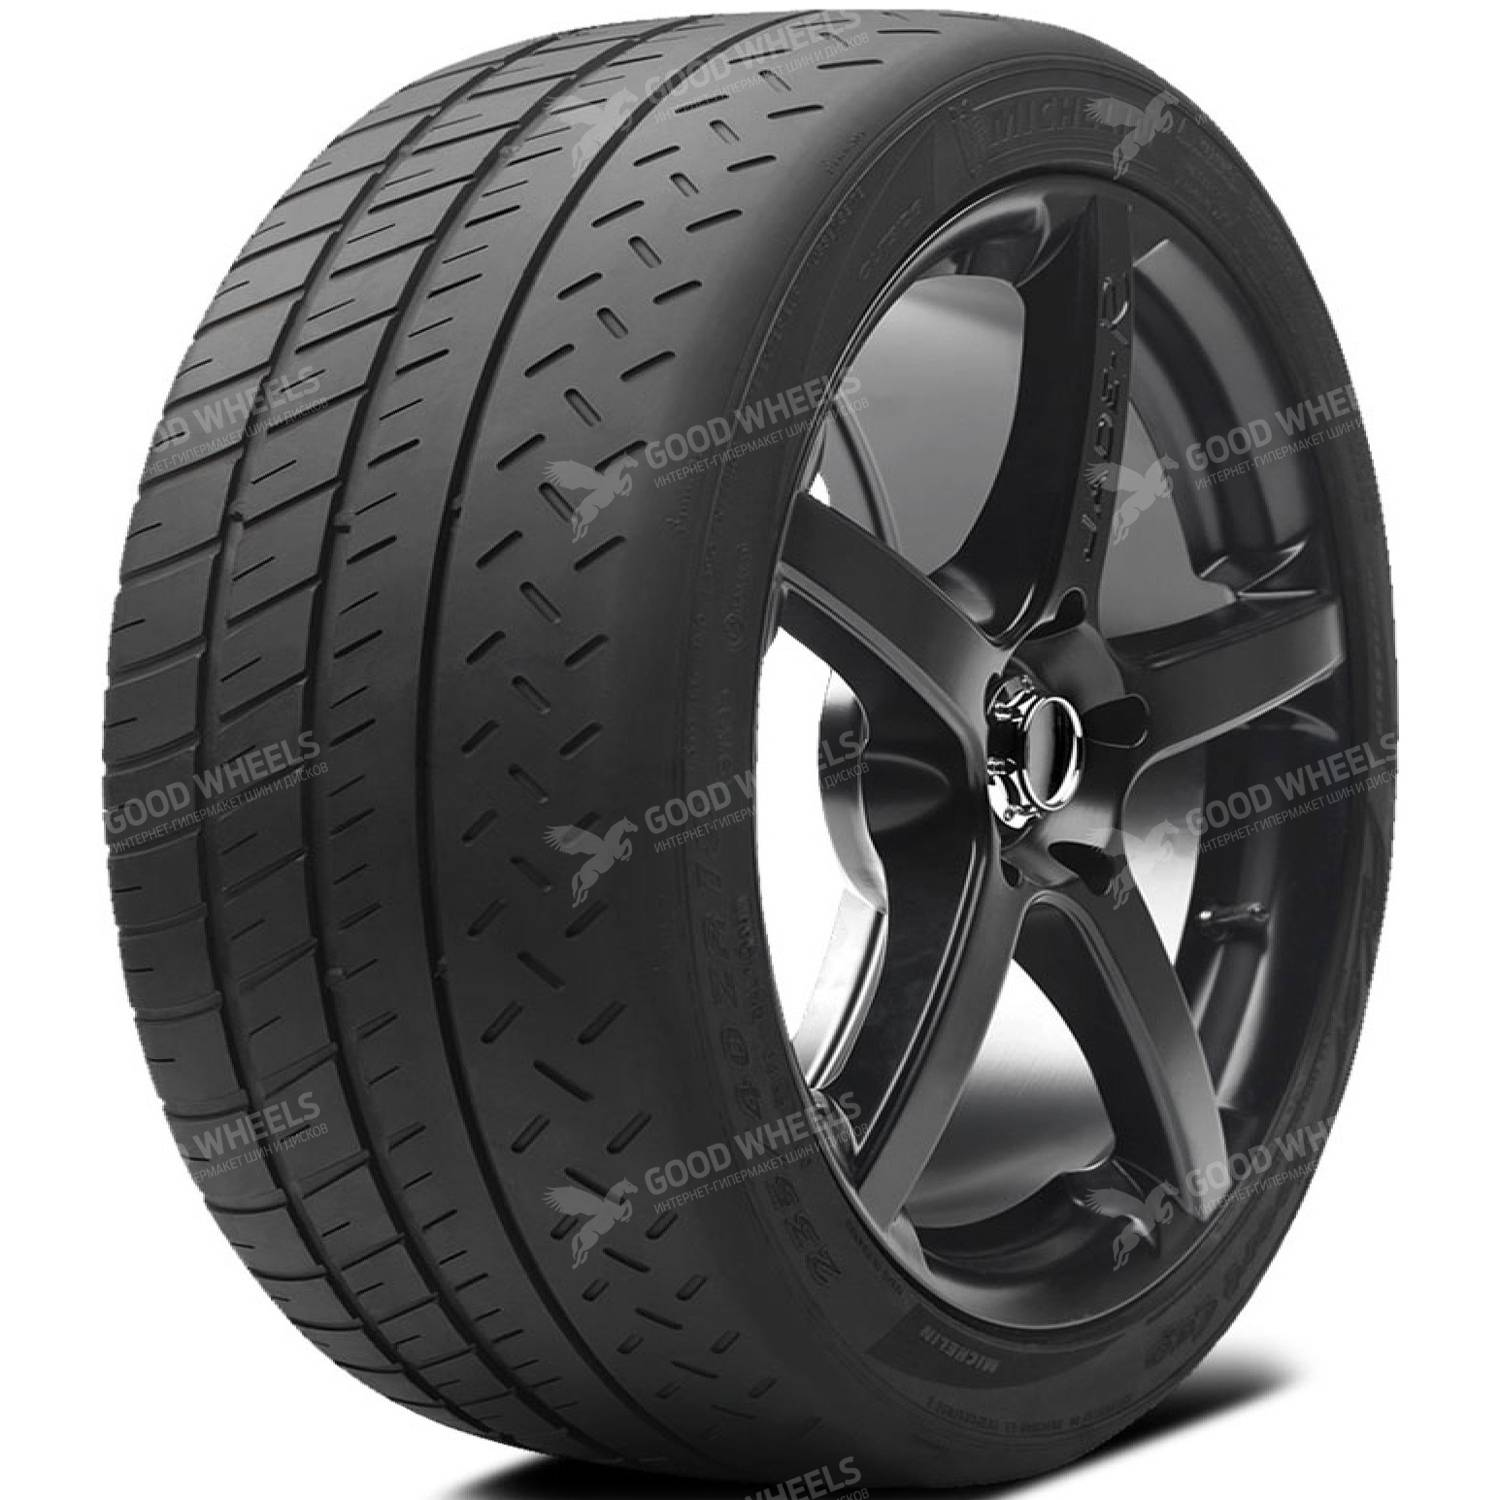 Michelin Pilot Sport Cup 305/30 R19 102Y